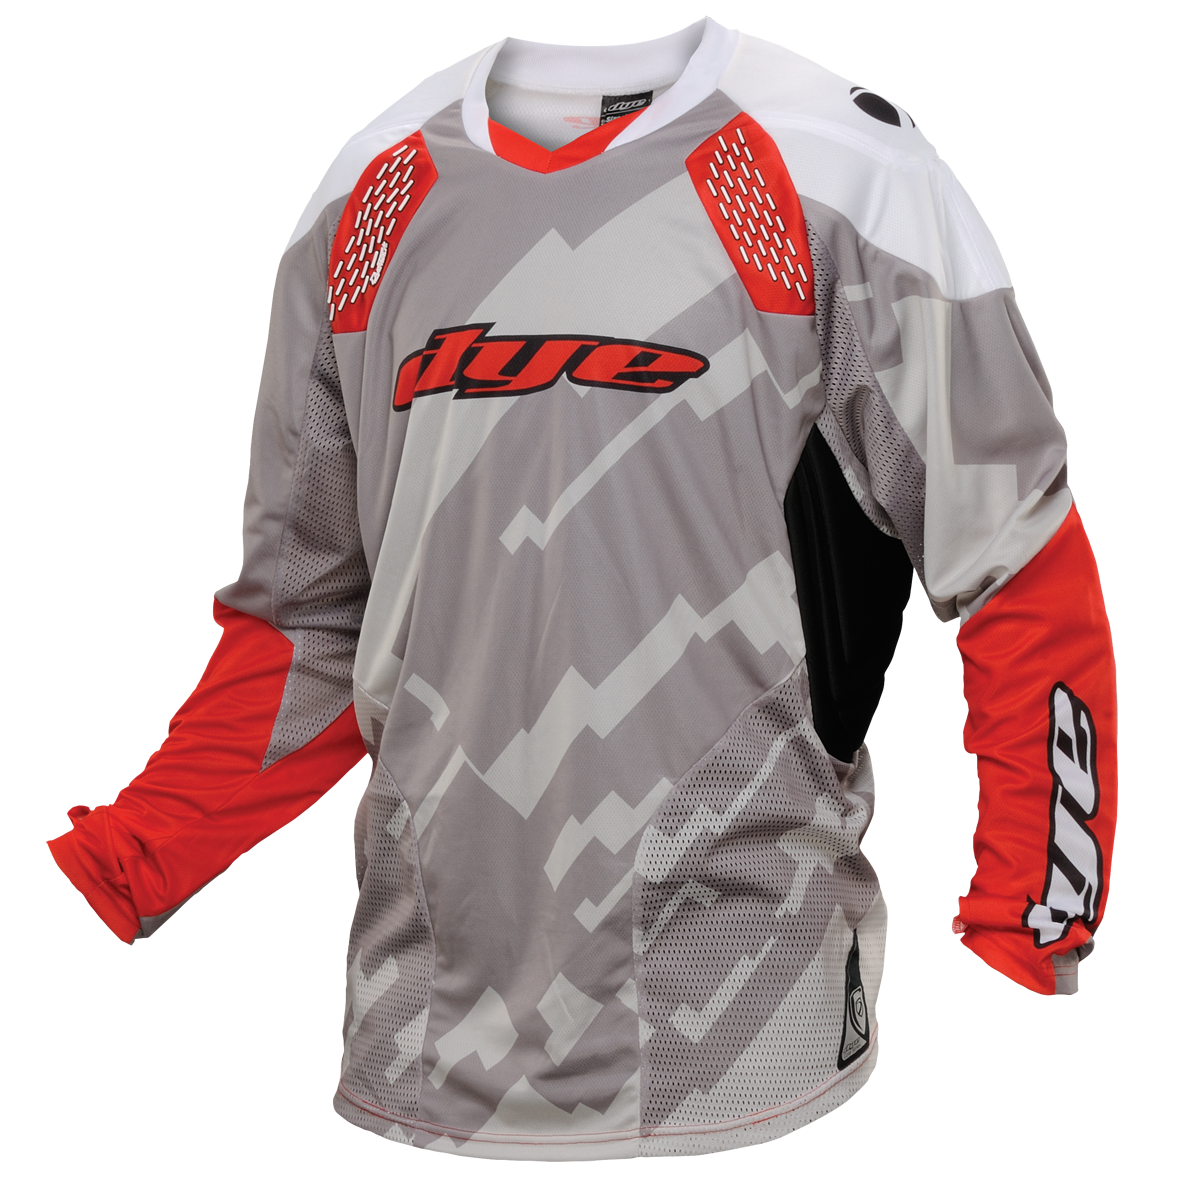 C14 Jersey   Airstrike   Gray   Red